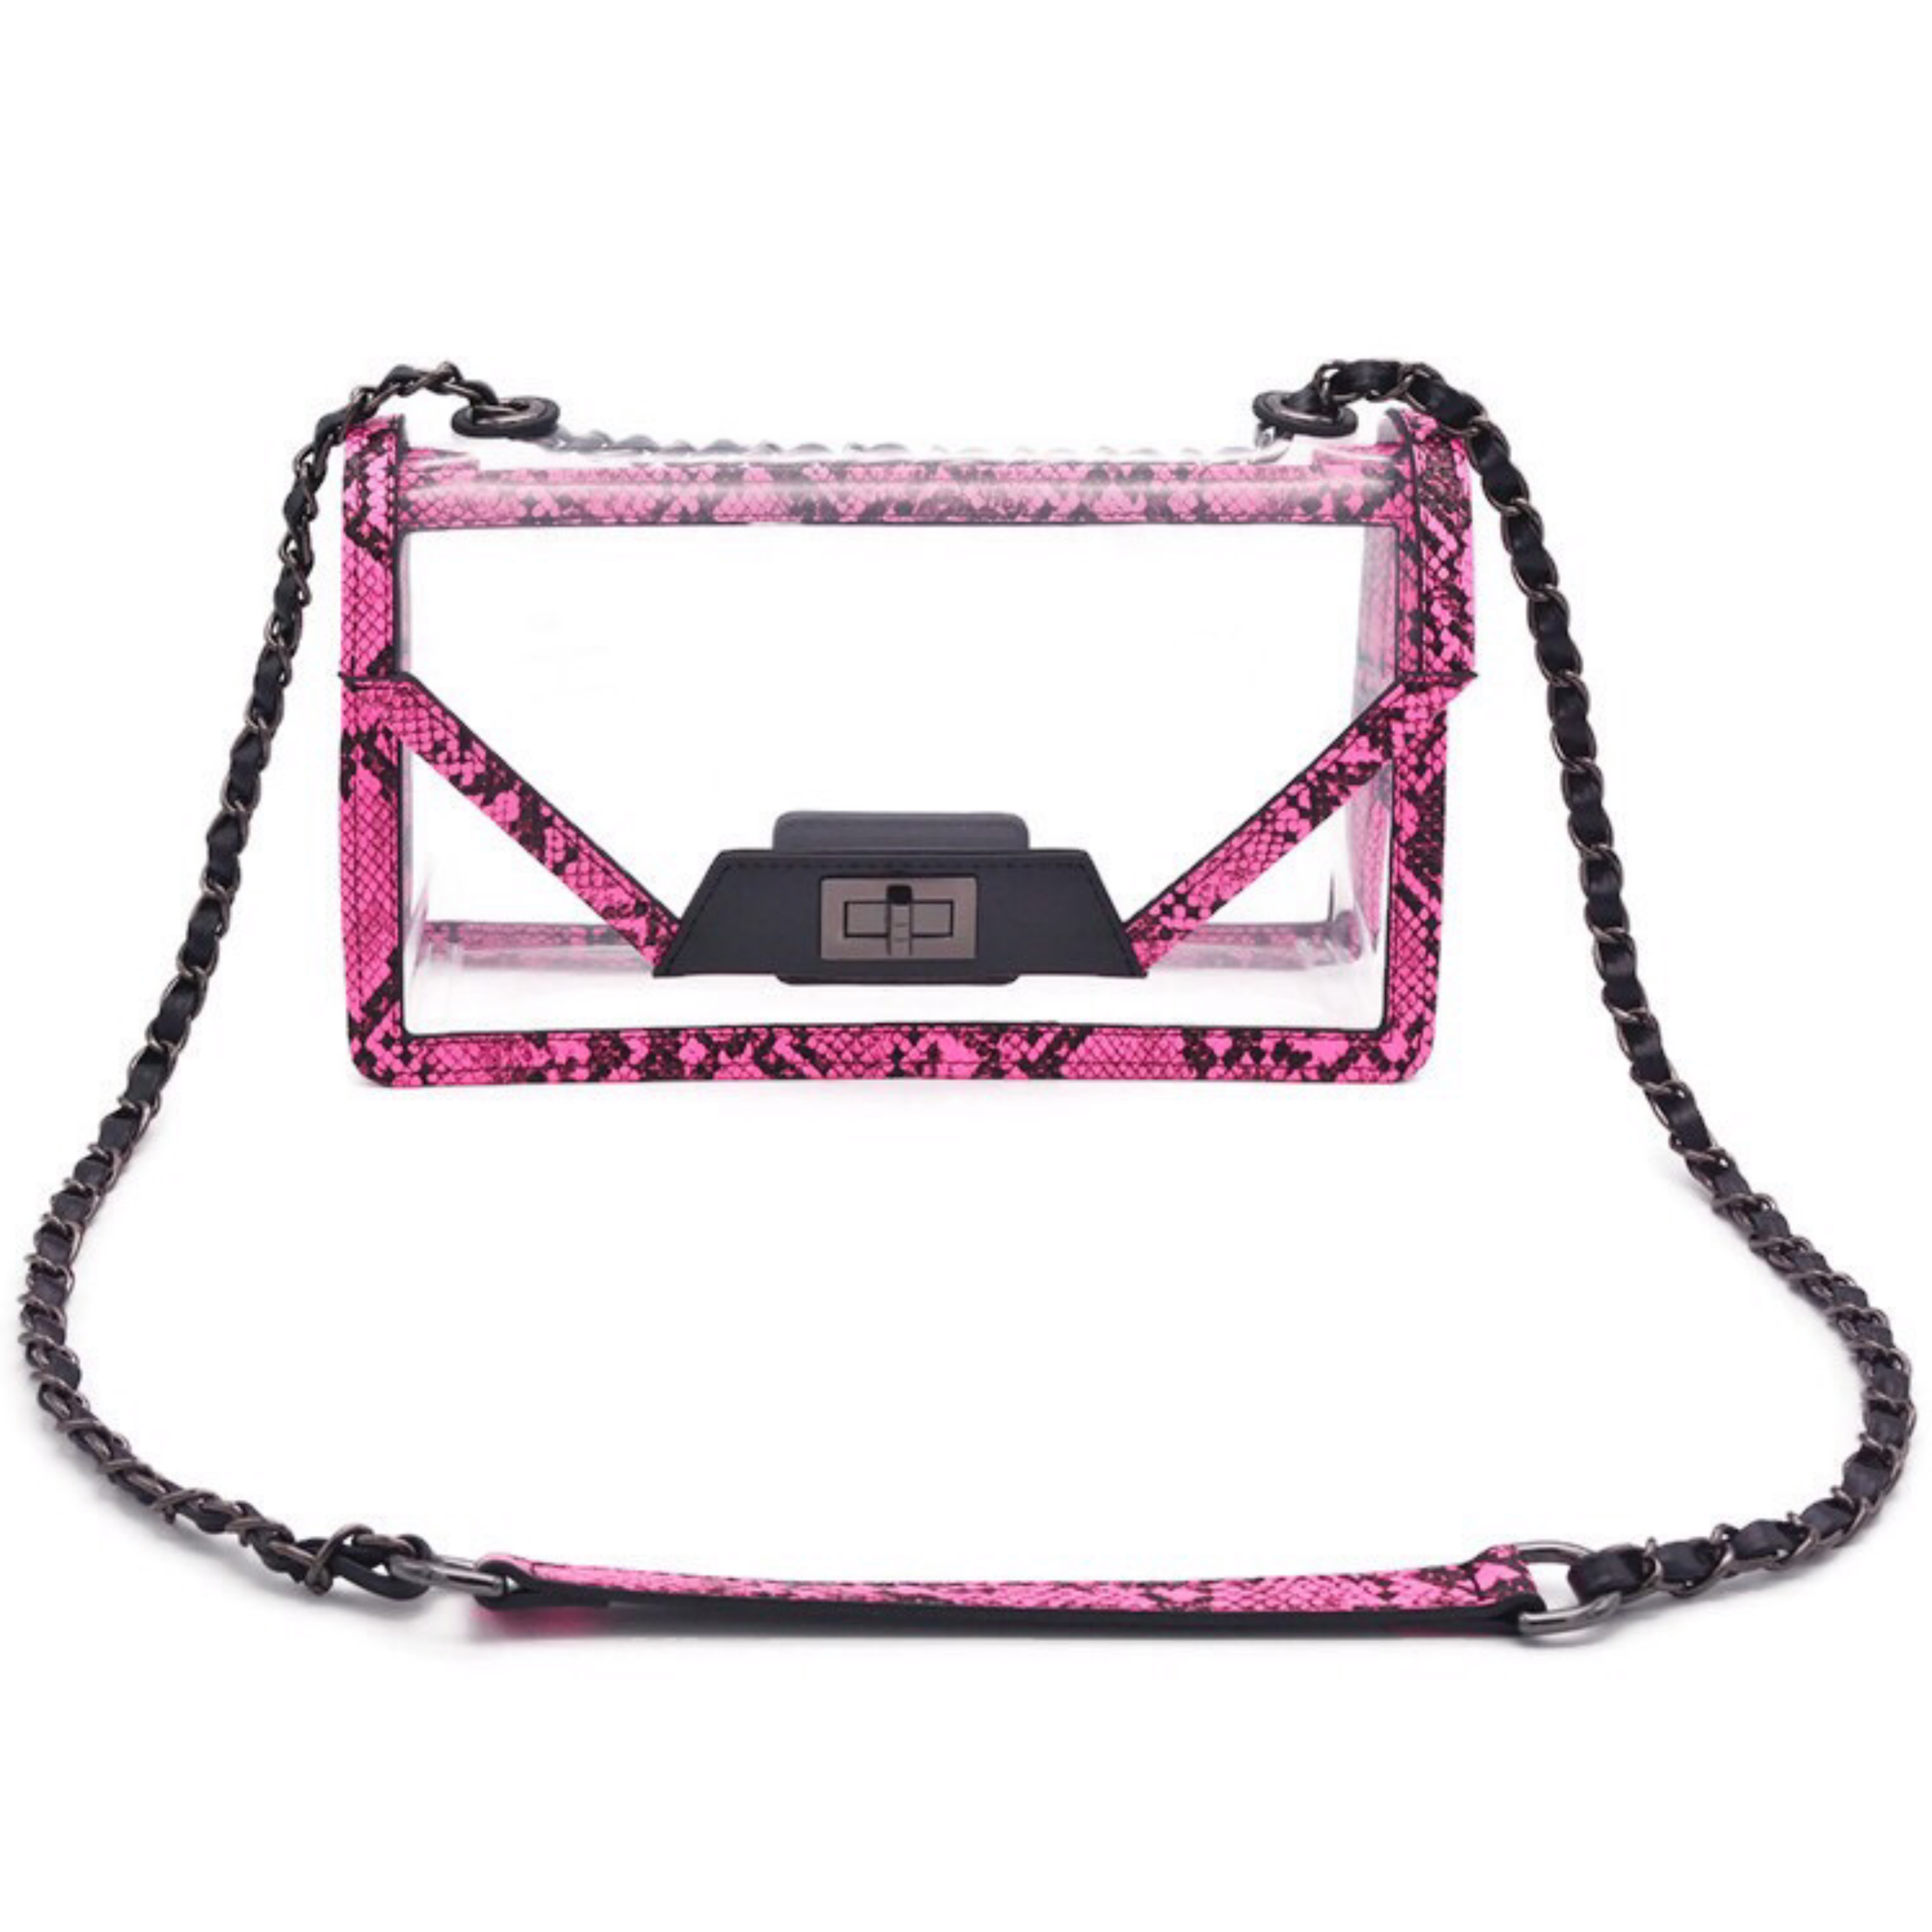 The Mama Cher | Python Punch POLICY Handbags